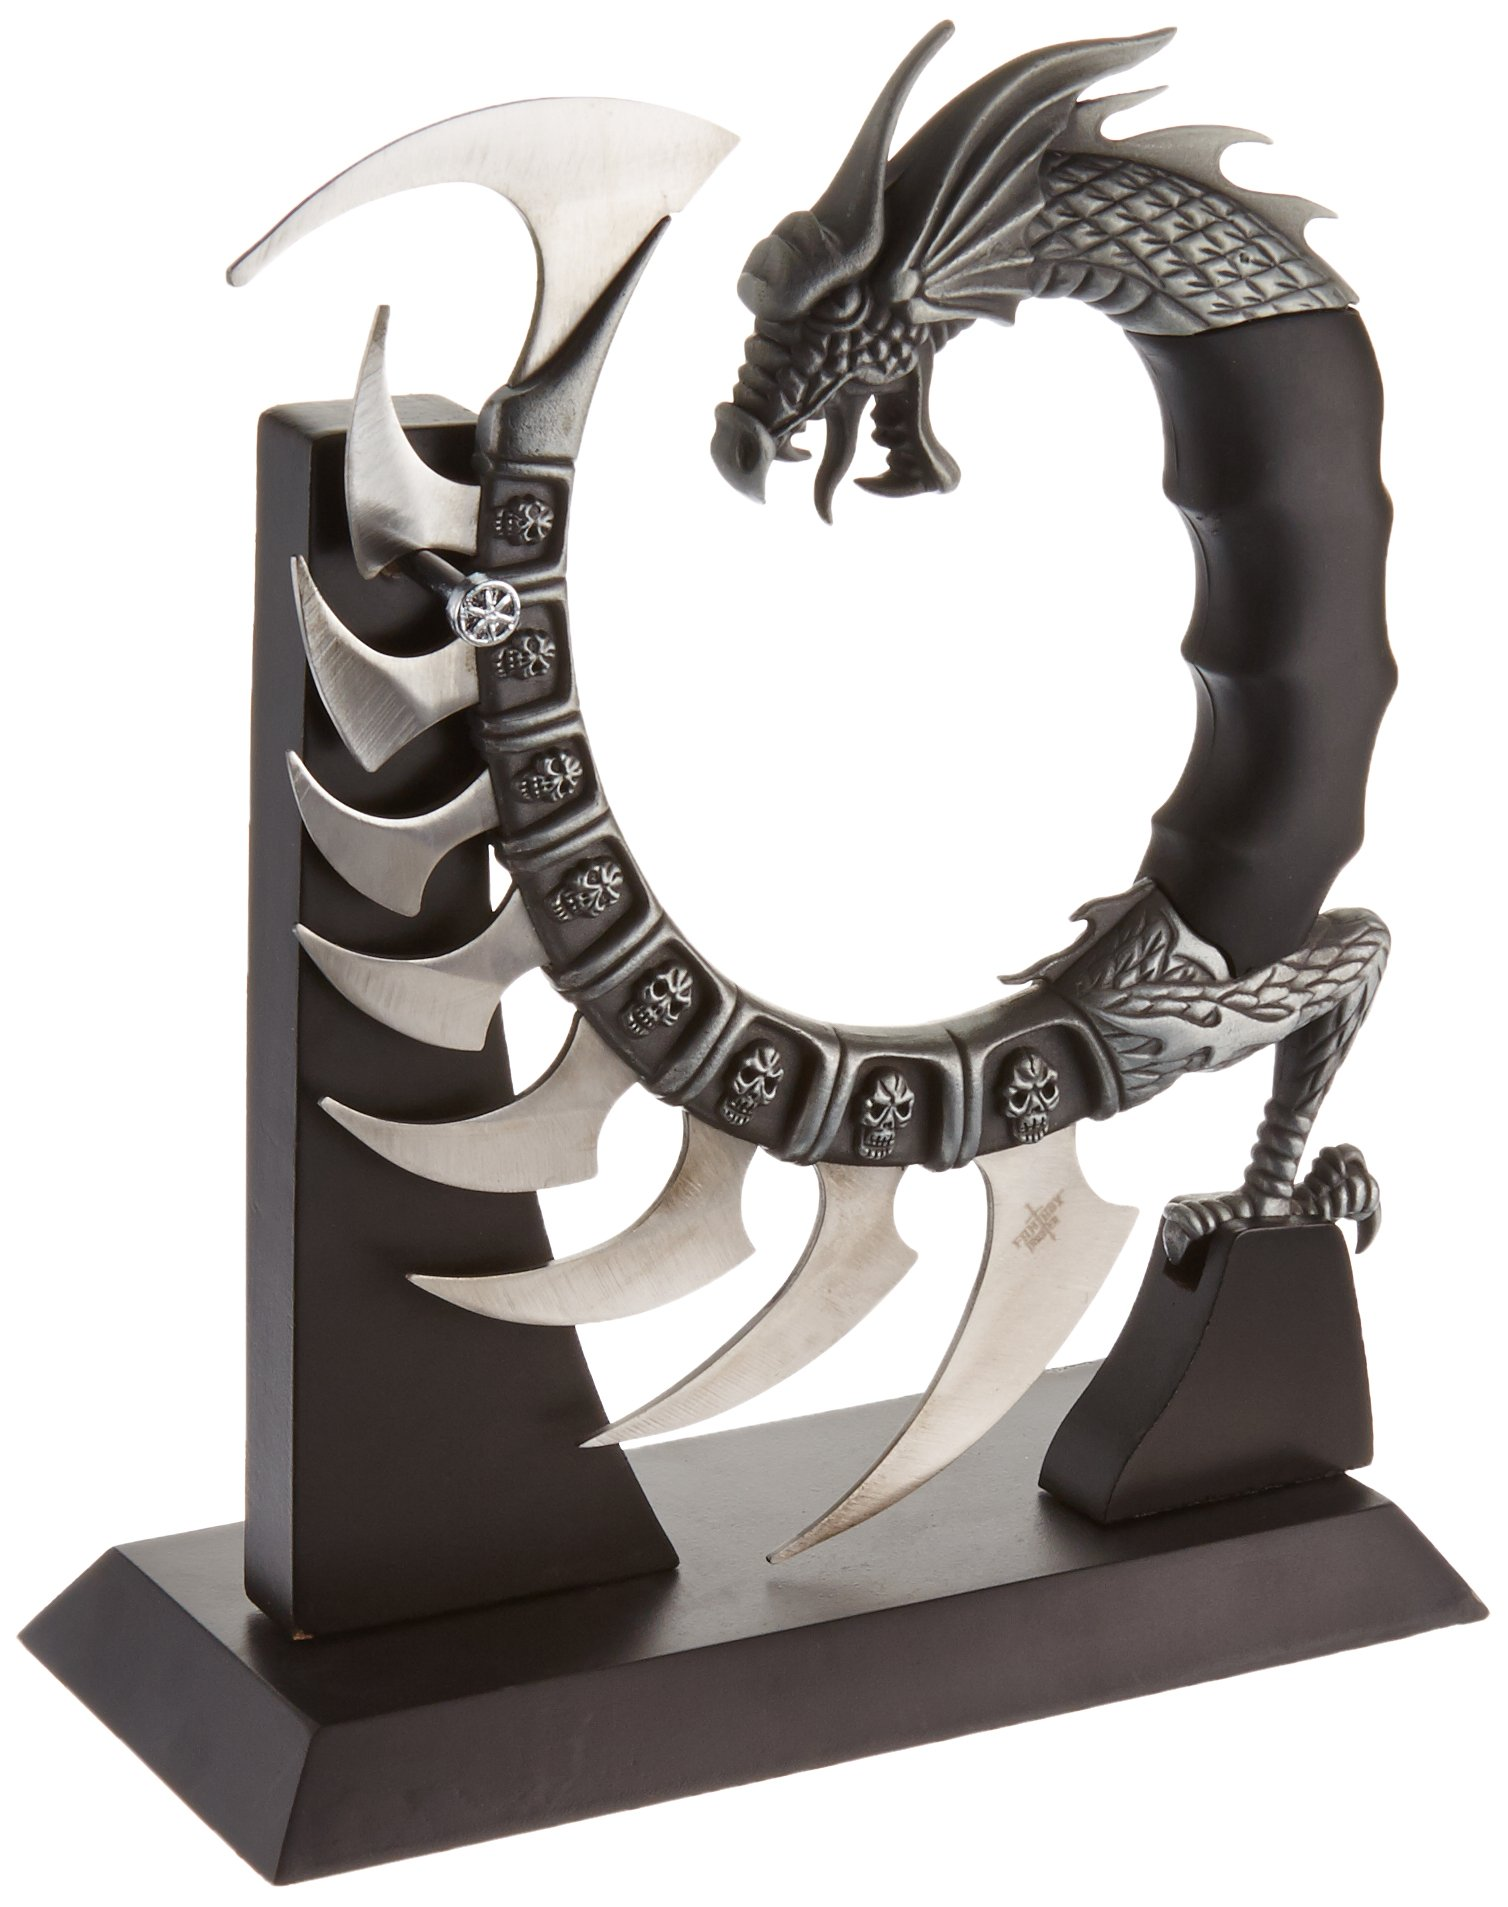 Fantasy Master Fm-571 Fantasy Dragon Show Blade With Stand 8-Inch Overall 2